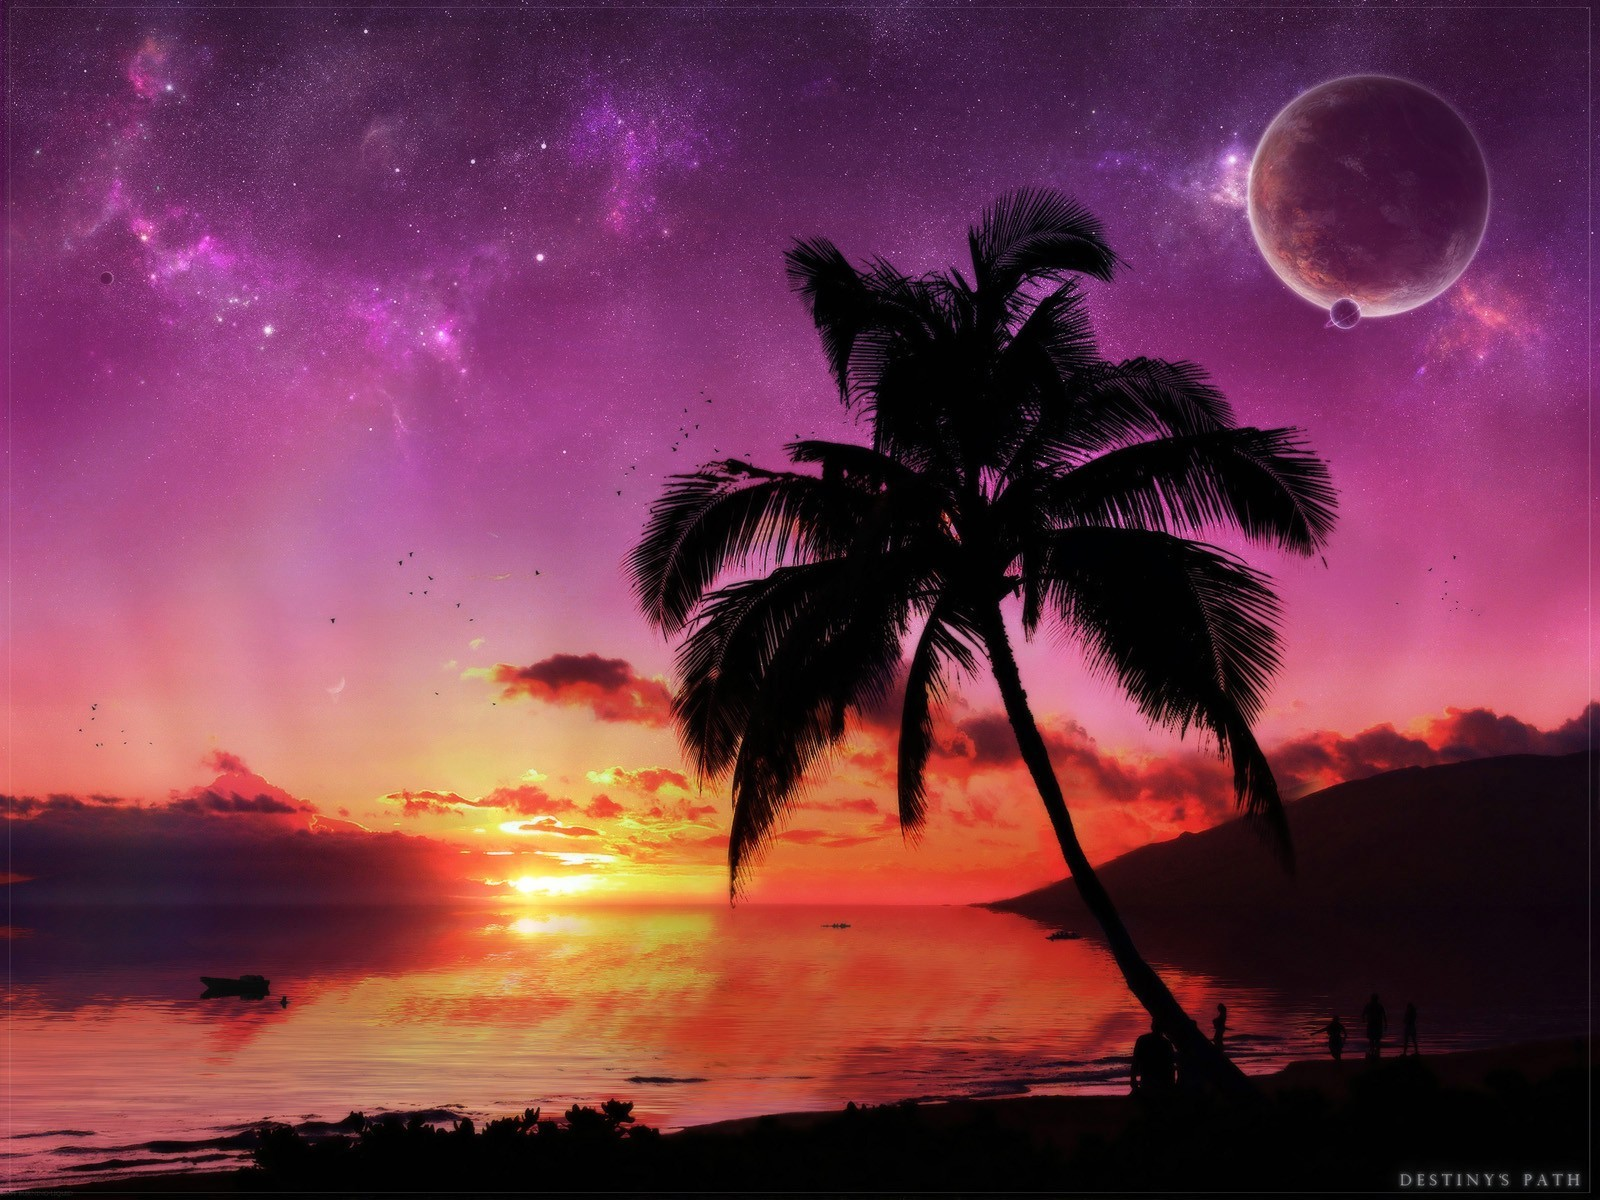 Beautiful And Amazing Sunset Wallpapers In HD - Wallpapers ...